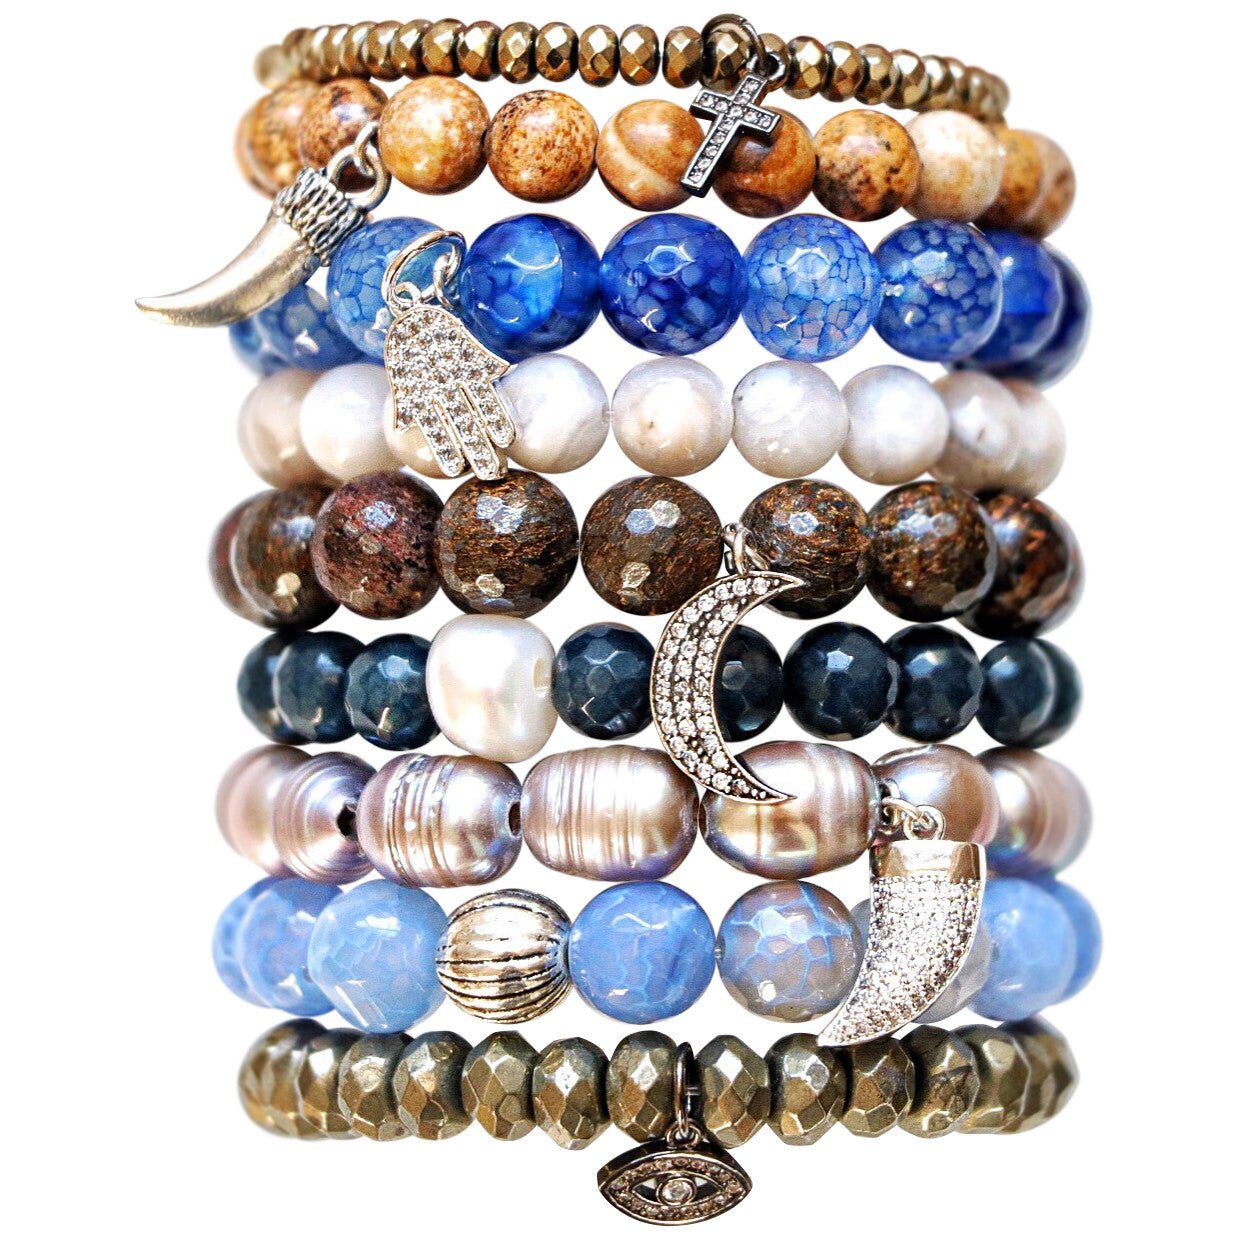 Molly Jane Designs Aqua Blue Agate Charm Bracelet